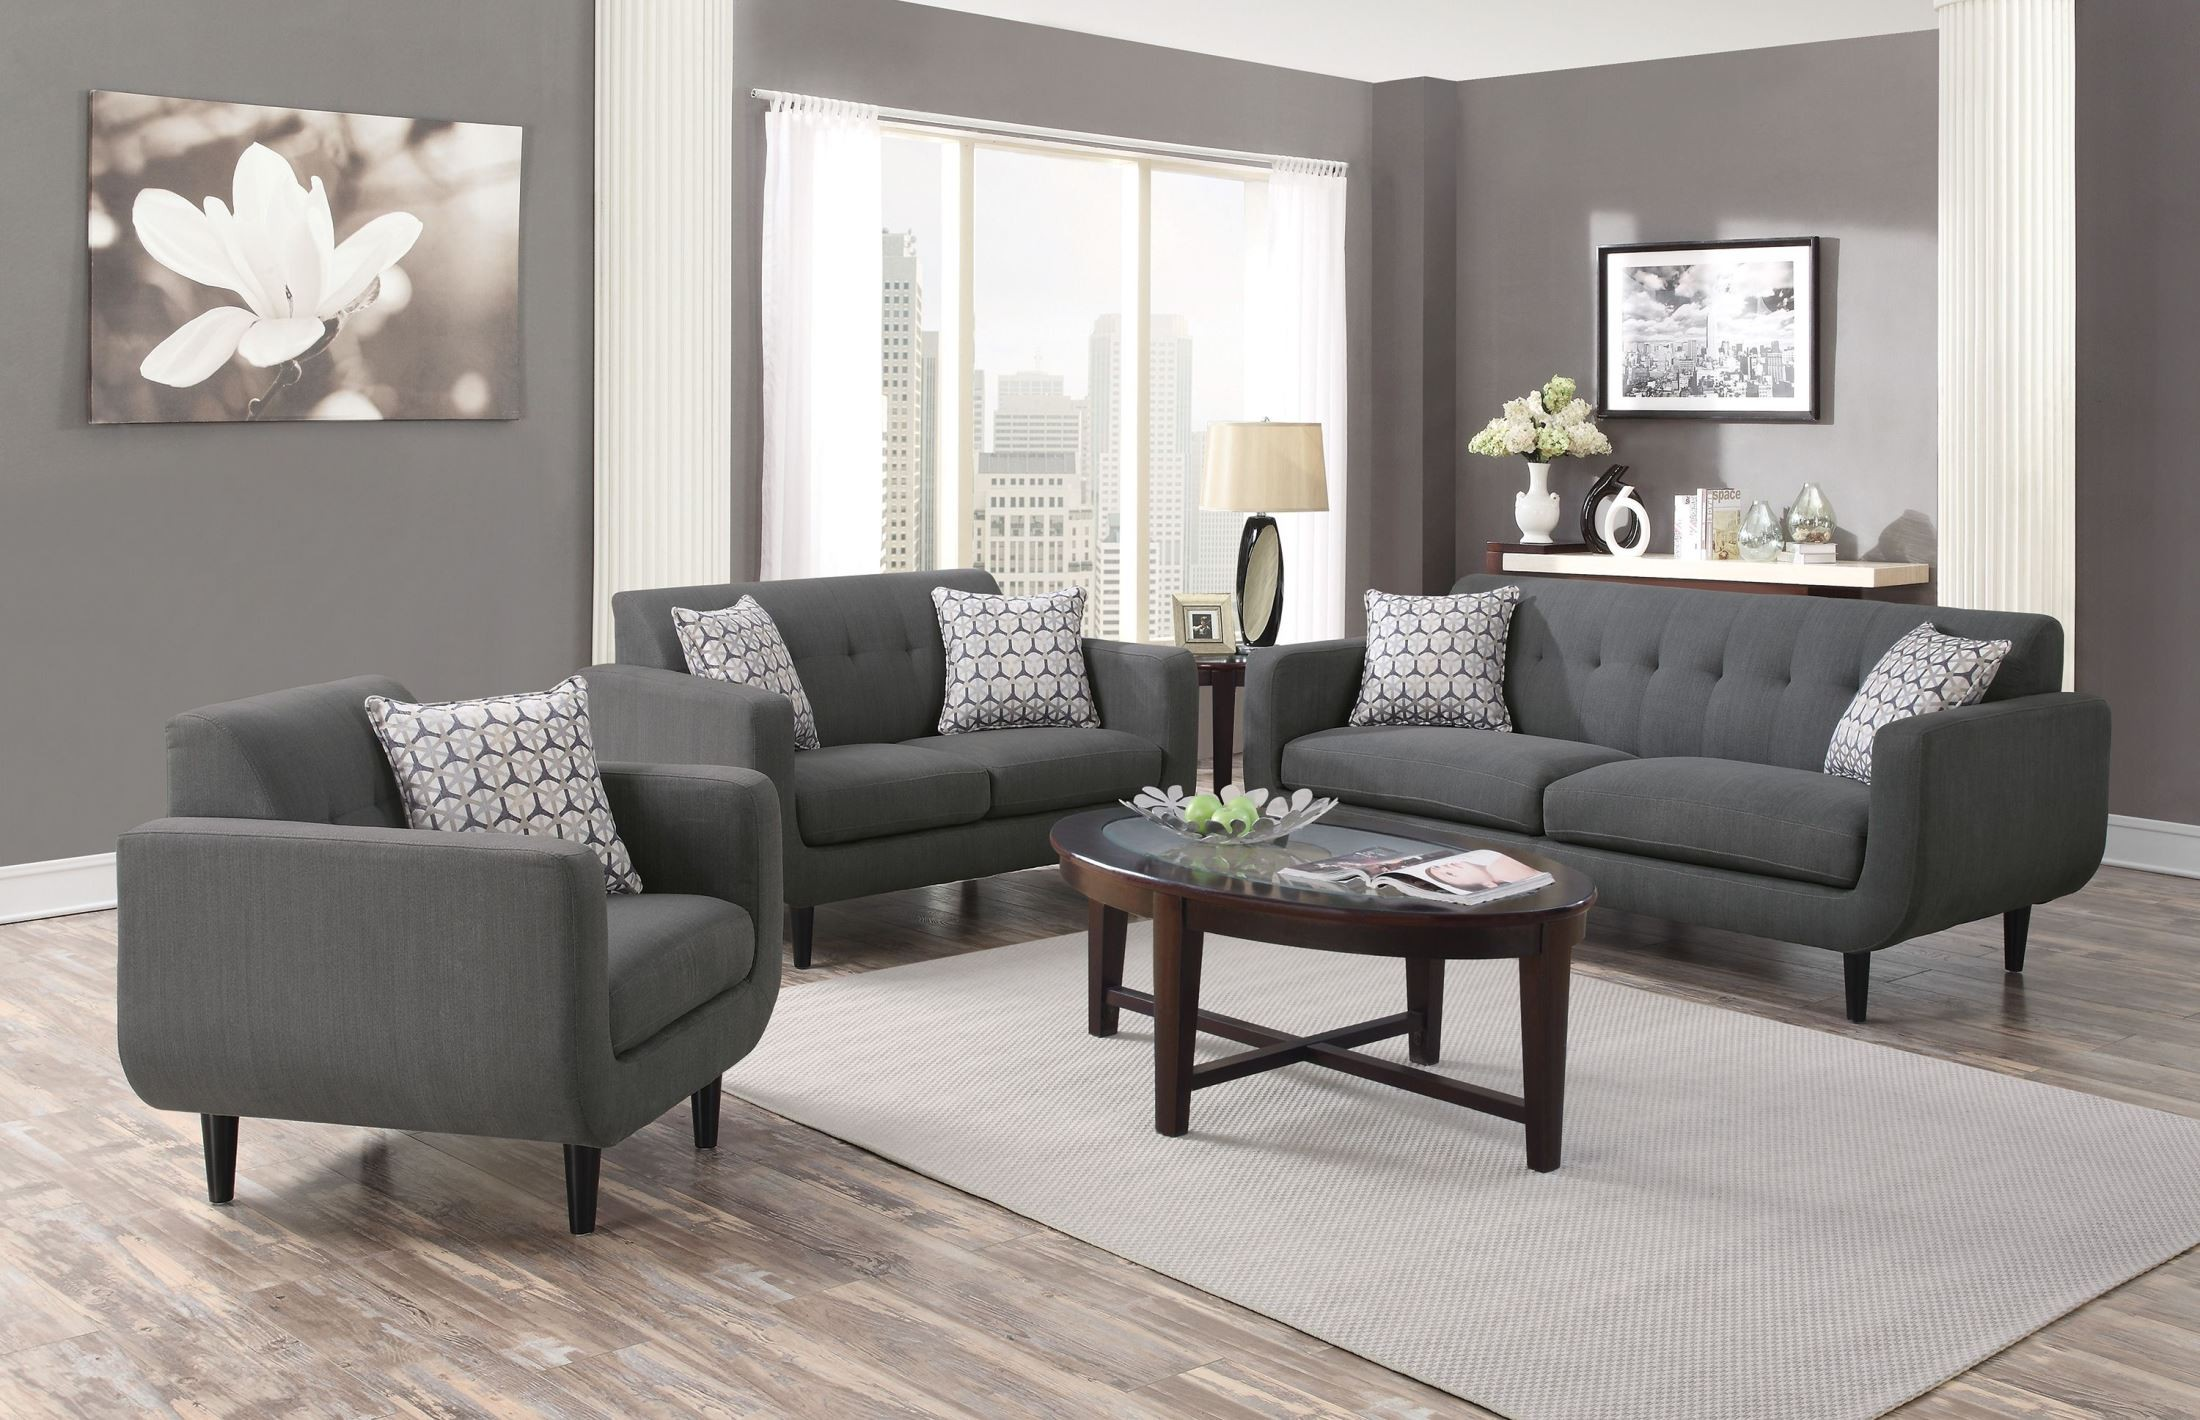 Stansall grey living room set 505201 coaster for Living room furniture